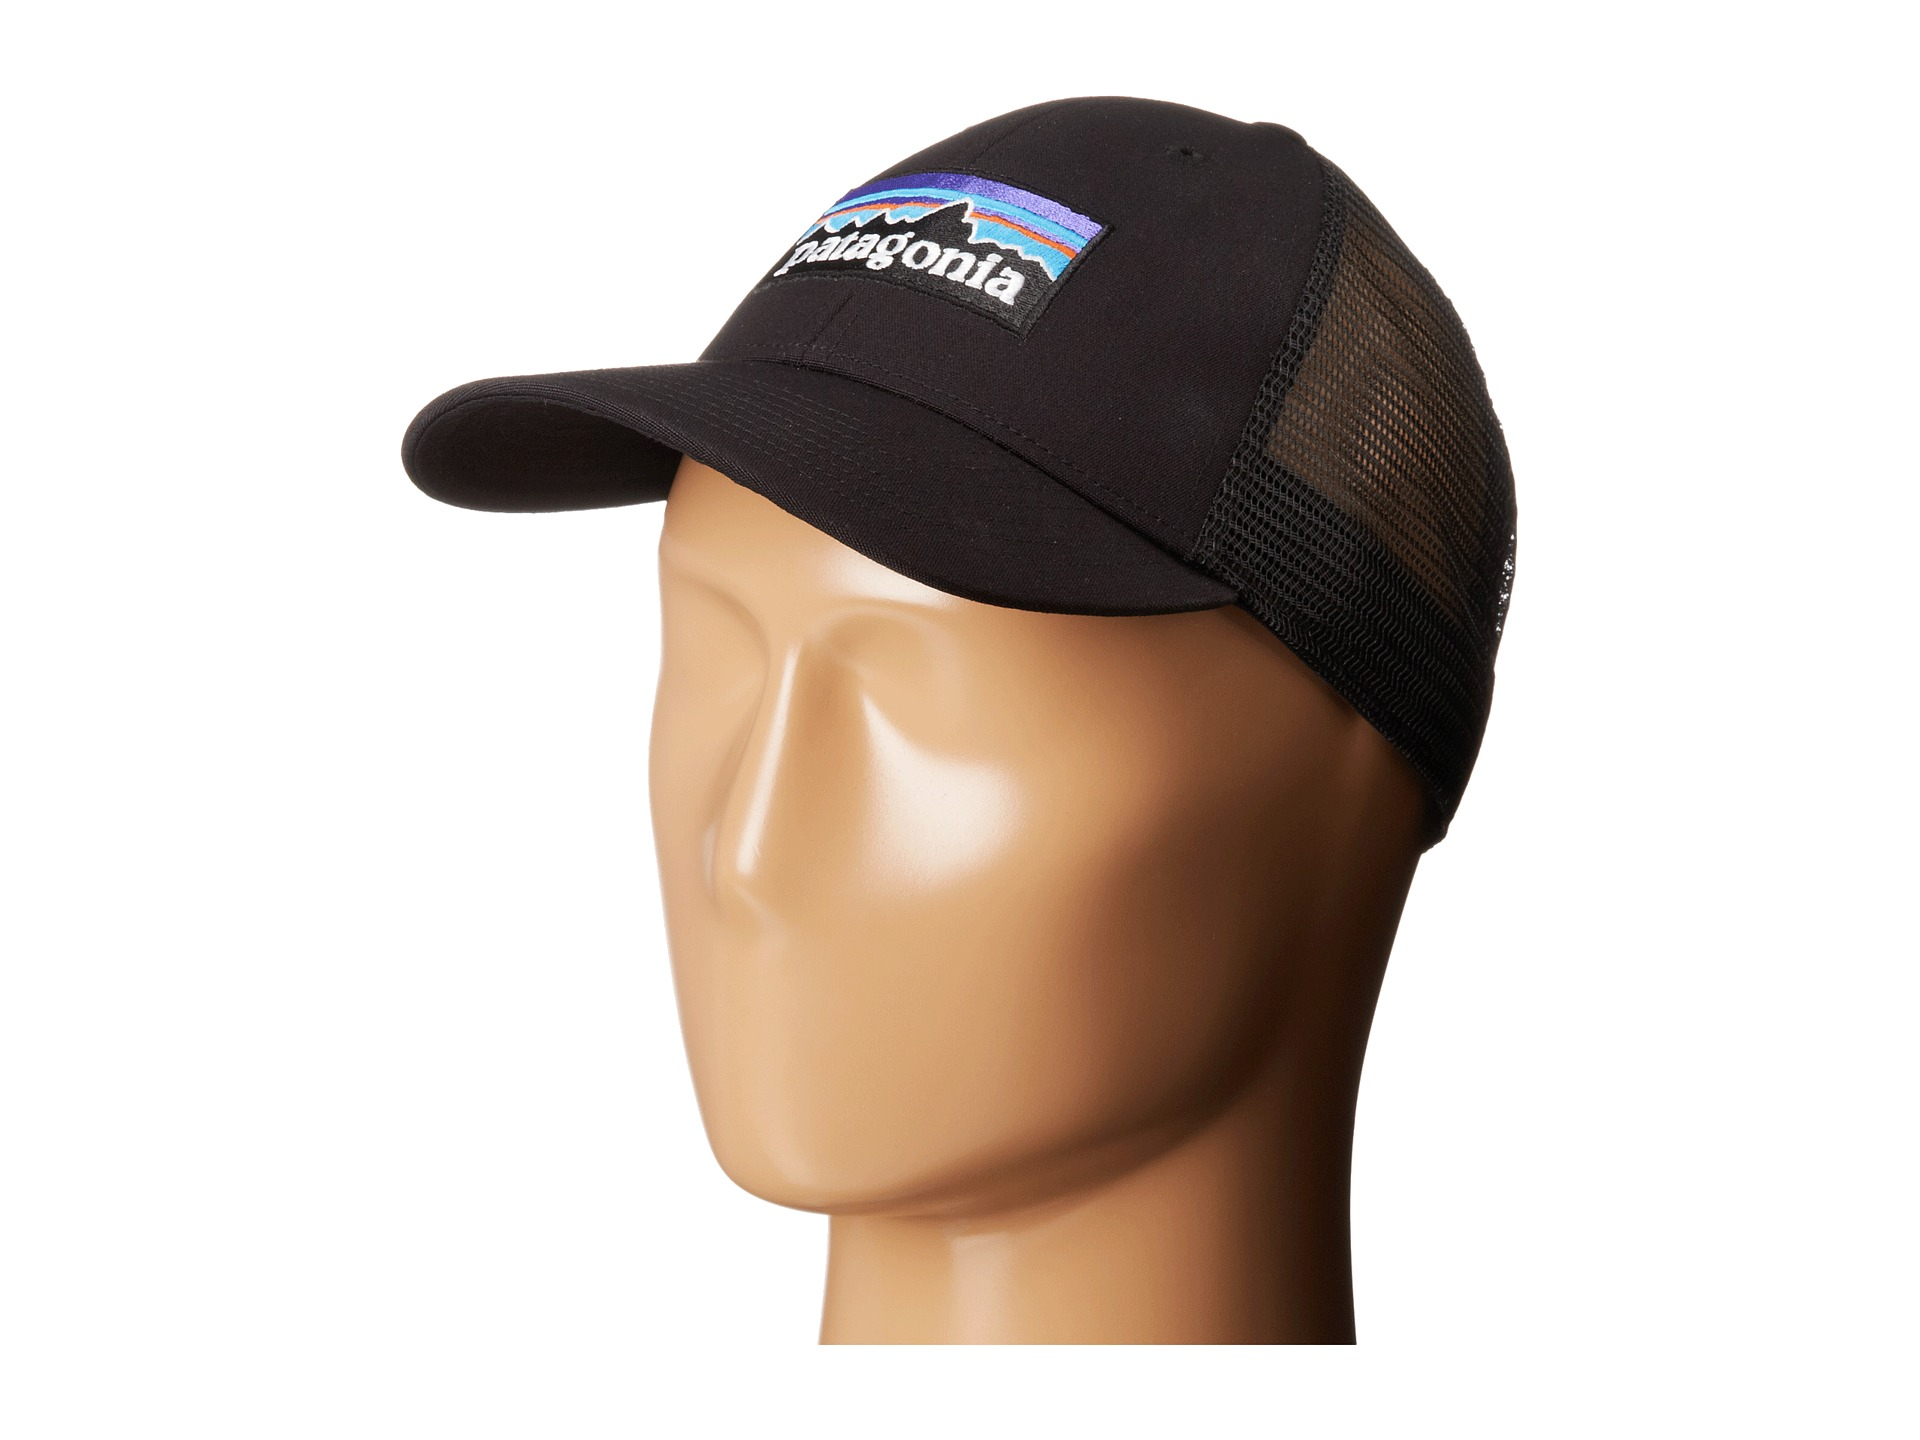 661375c4d34 Lyst - Patagonia P6 Lopro Trucker Hat in Black